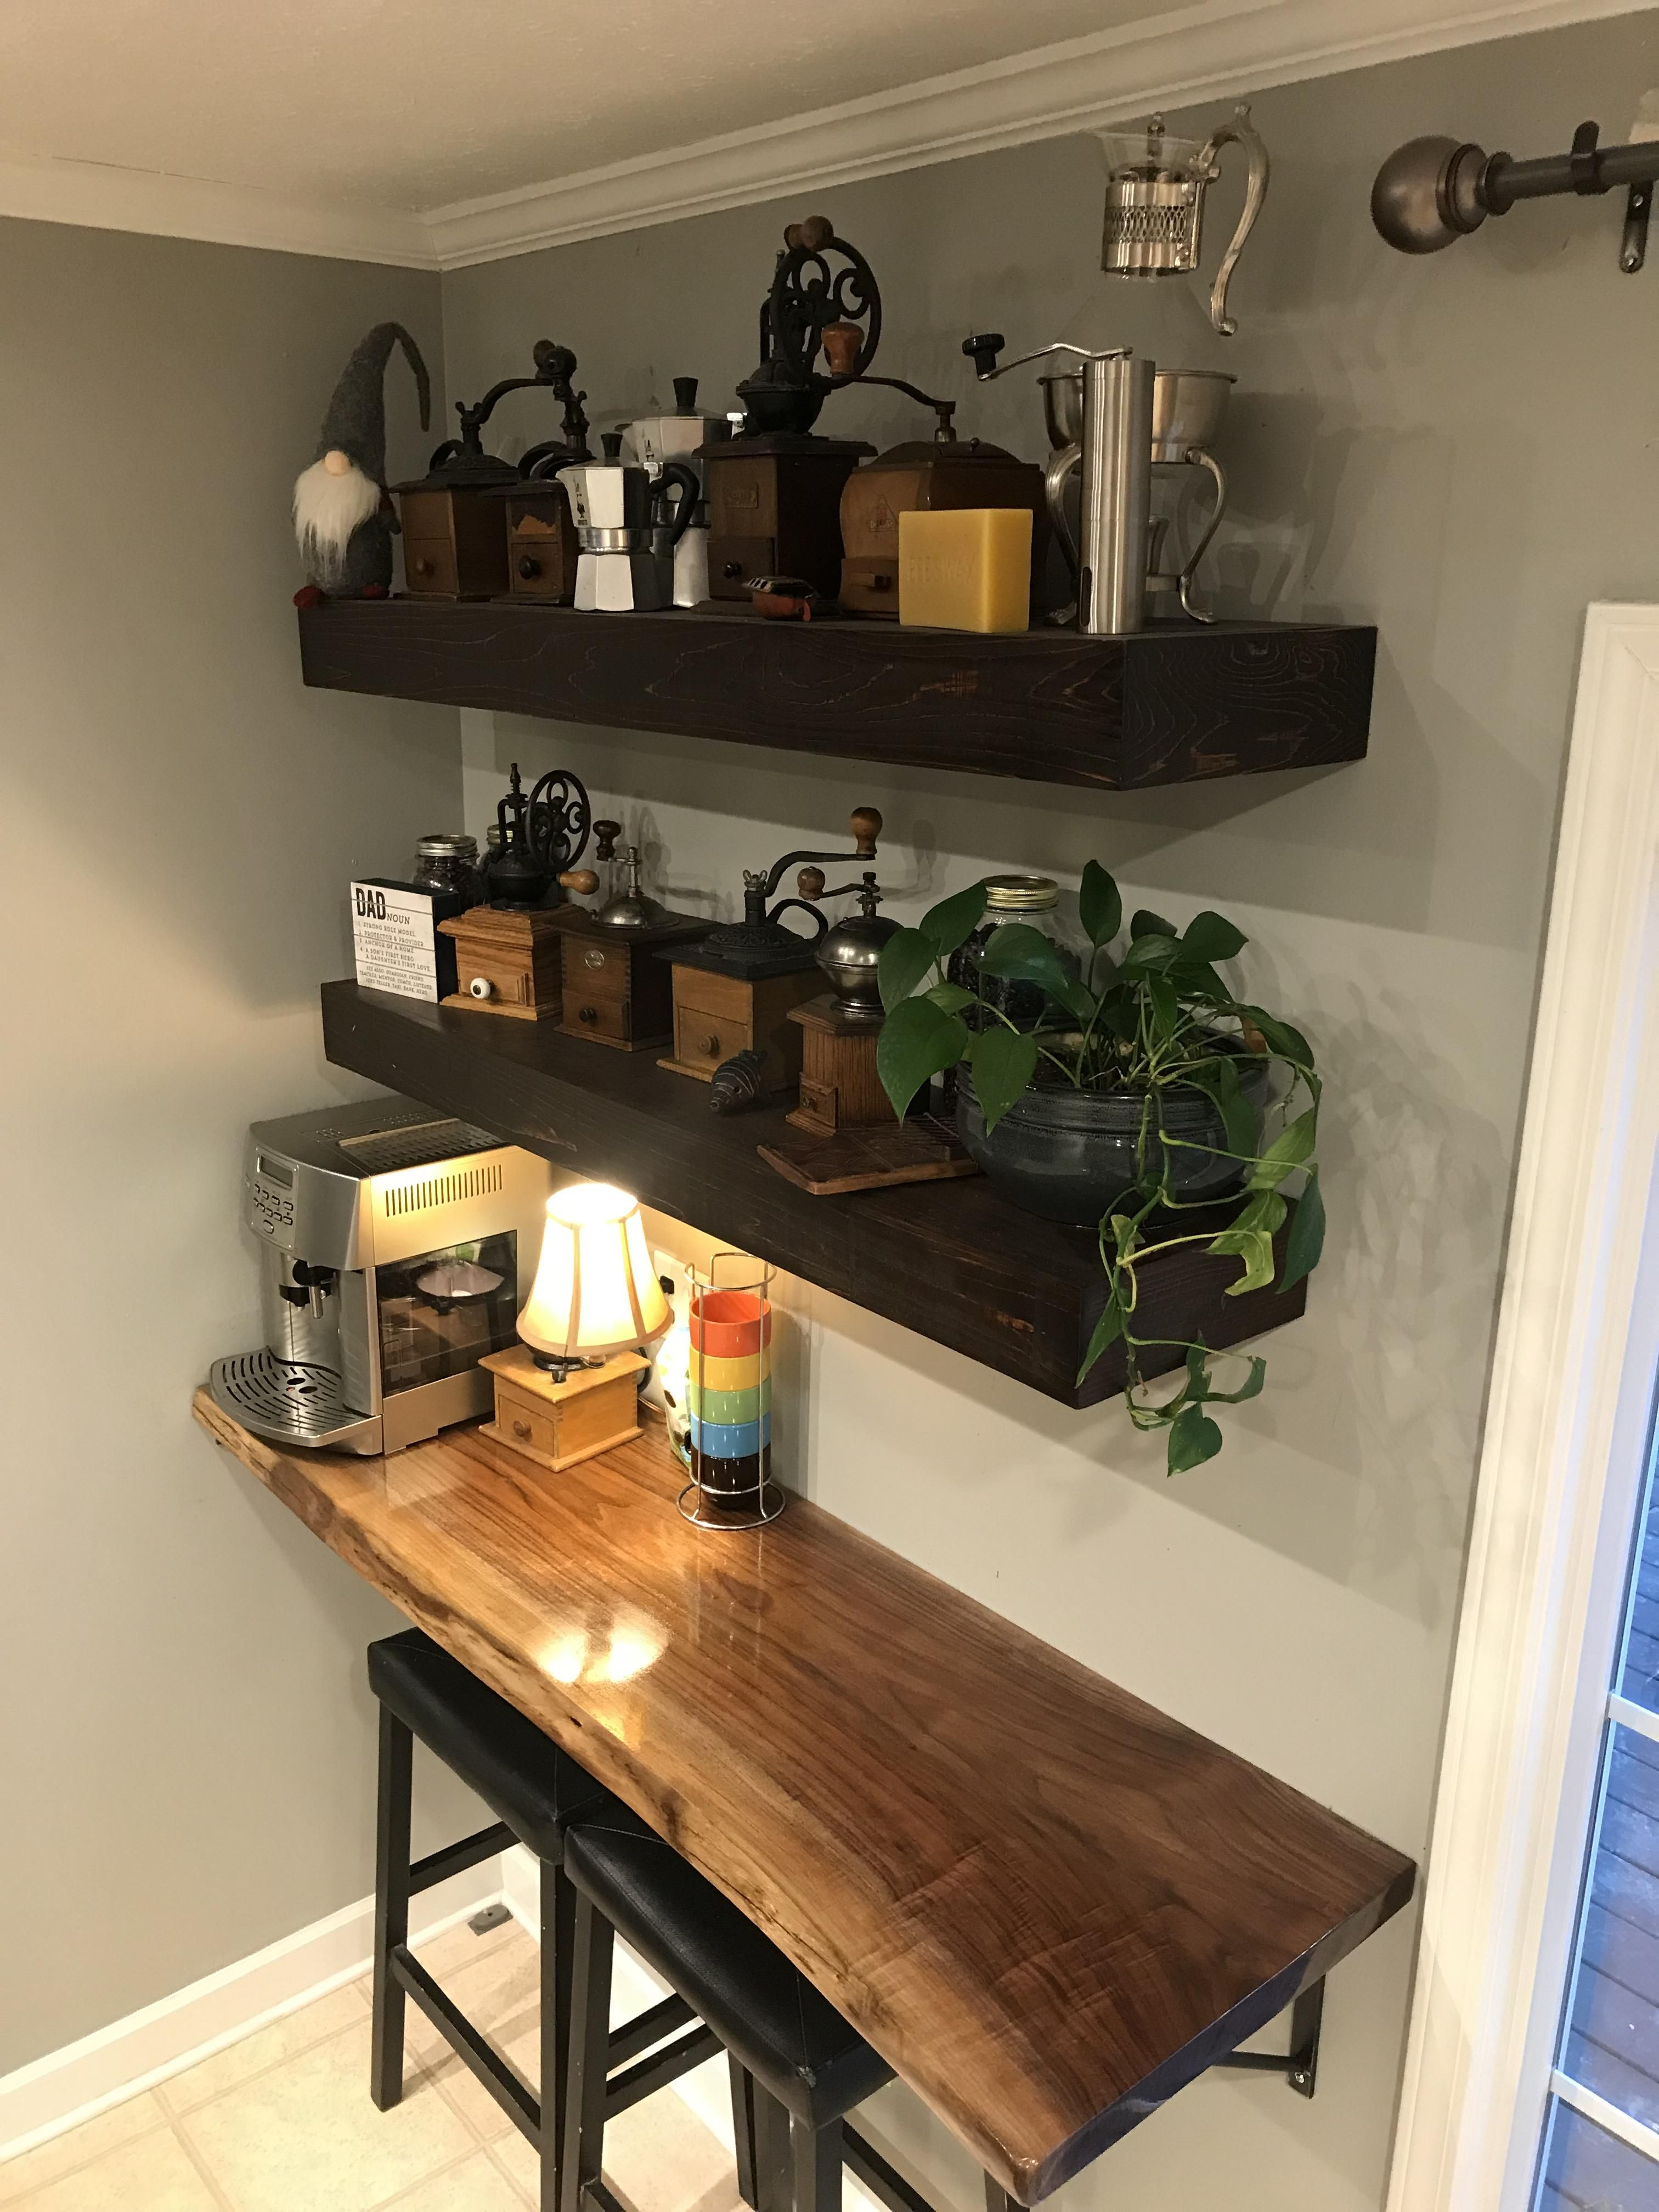 Coffee Bar And Floating Shelves I Made For Our Kitchen Bar Top Is Black Walnut And Shelves Are Stain Home Bar Decor Floating Shelves Kitchen Kitchen Bar Table